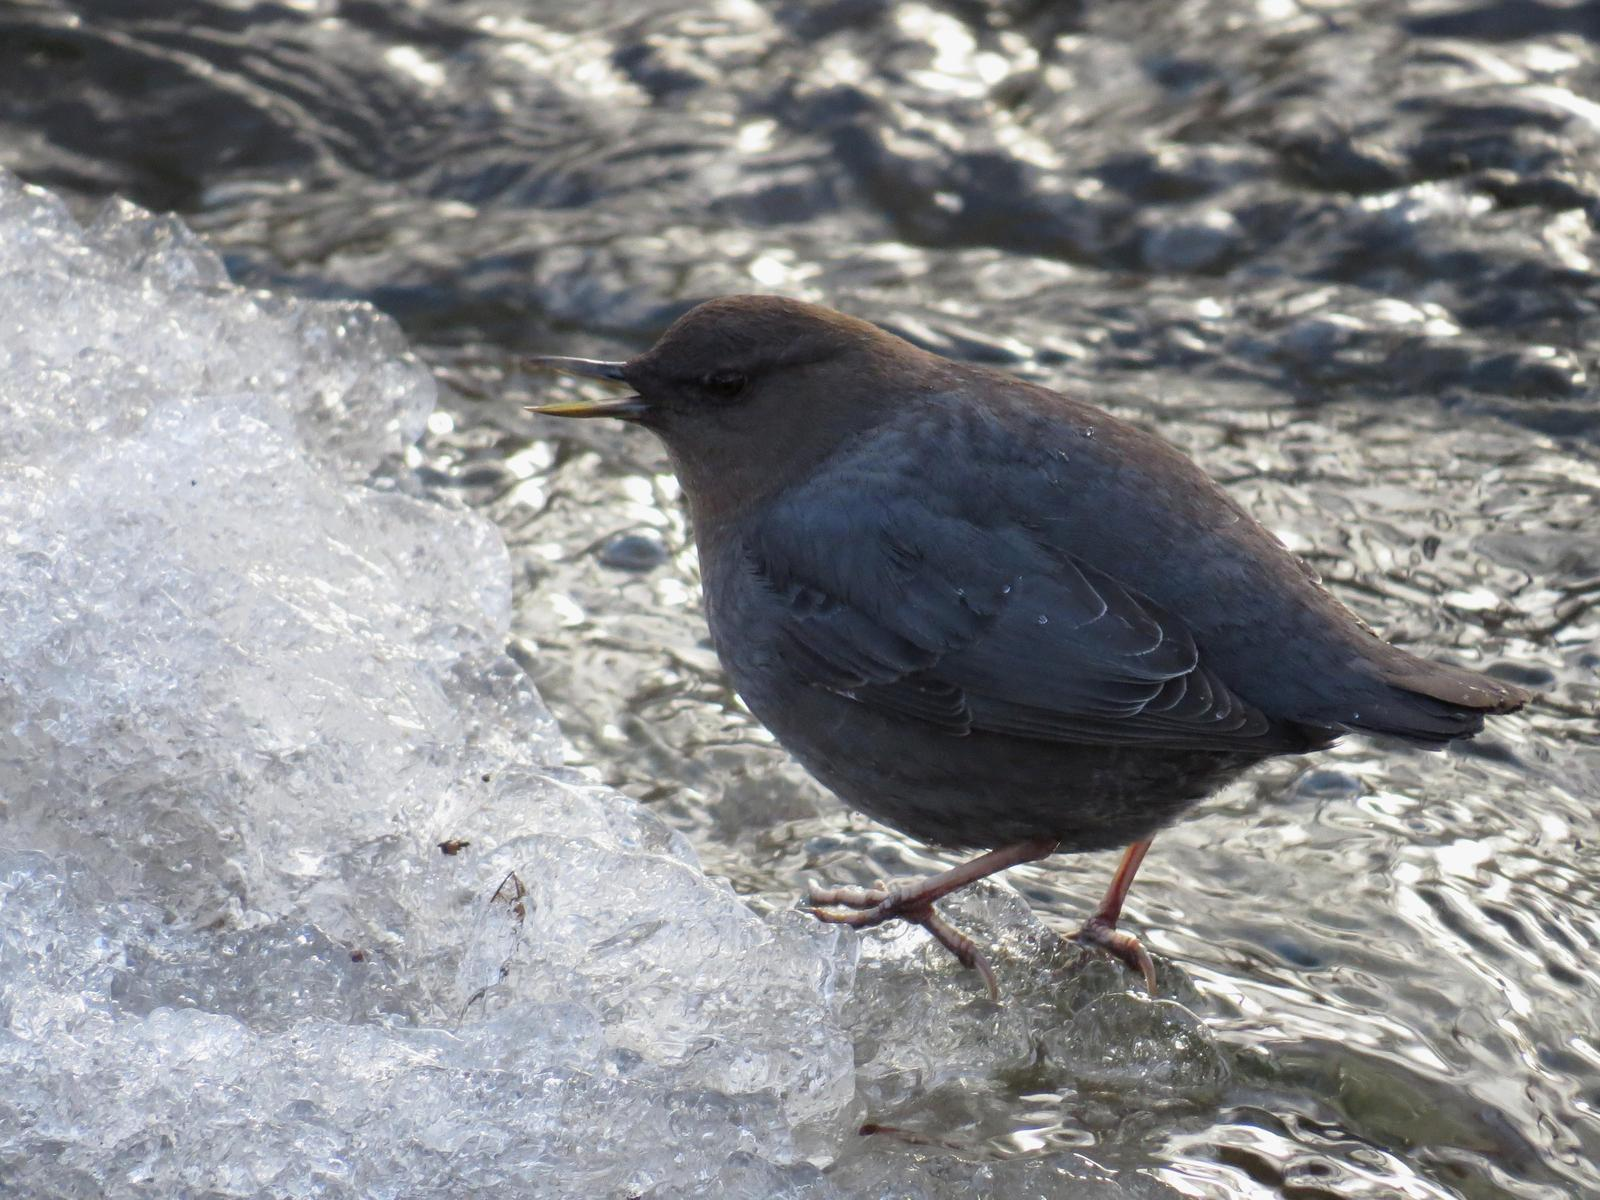 American Dipper Photo by George Mayfield